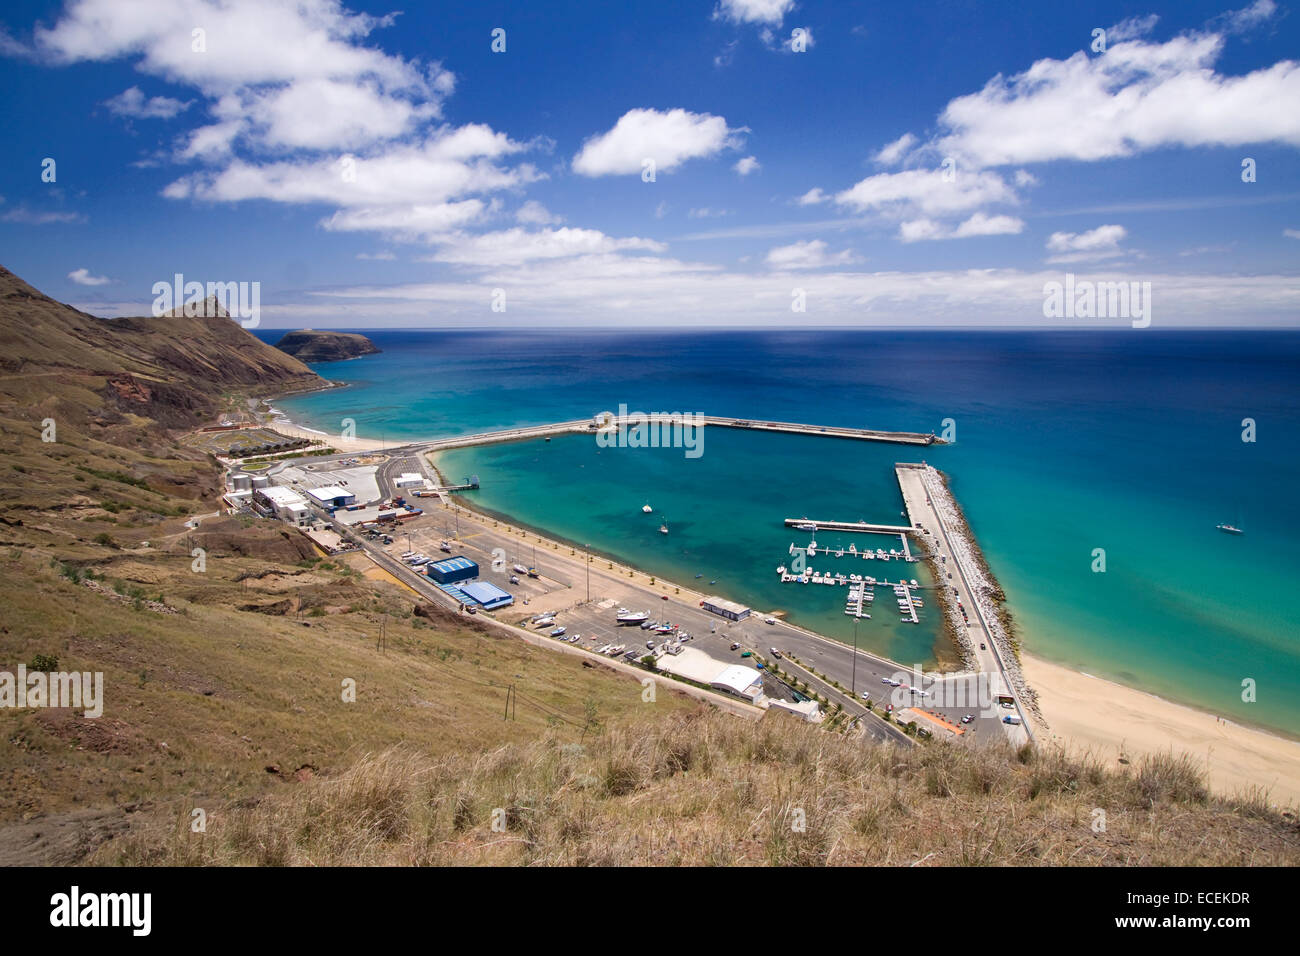 The harbor in Porto Santo, Madeira, Portugal - Stock Image